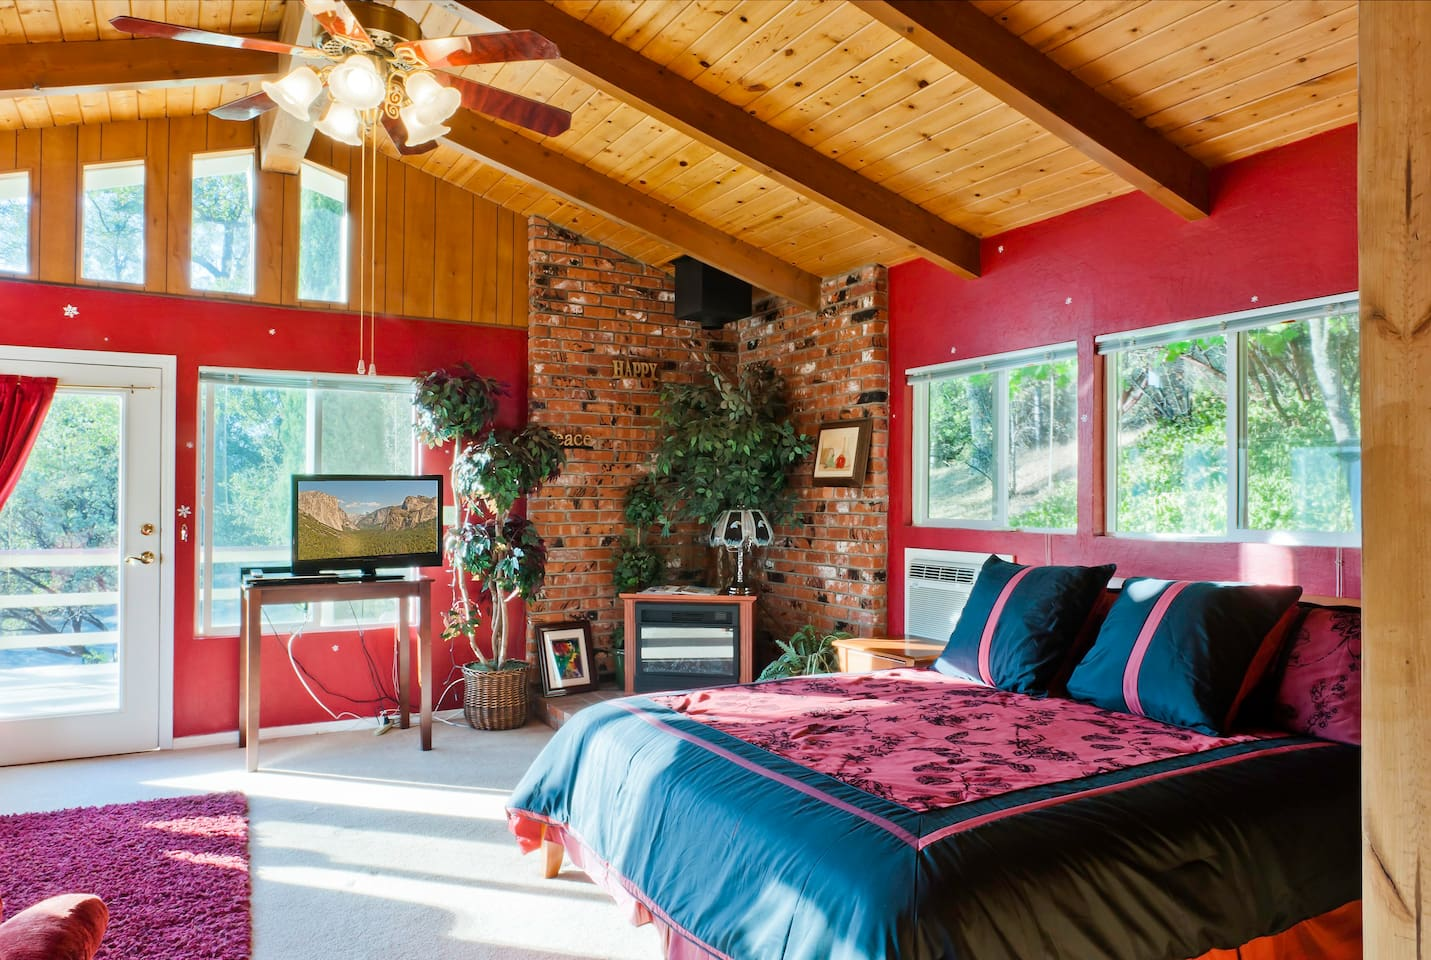 The Red Rose with its own private deck, private entrance, cabin-like ceiling, jetted tub, separate shower, double sinks, king-sized bed and futon, and gorgeous views!